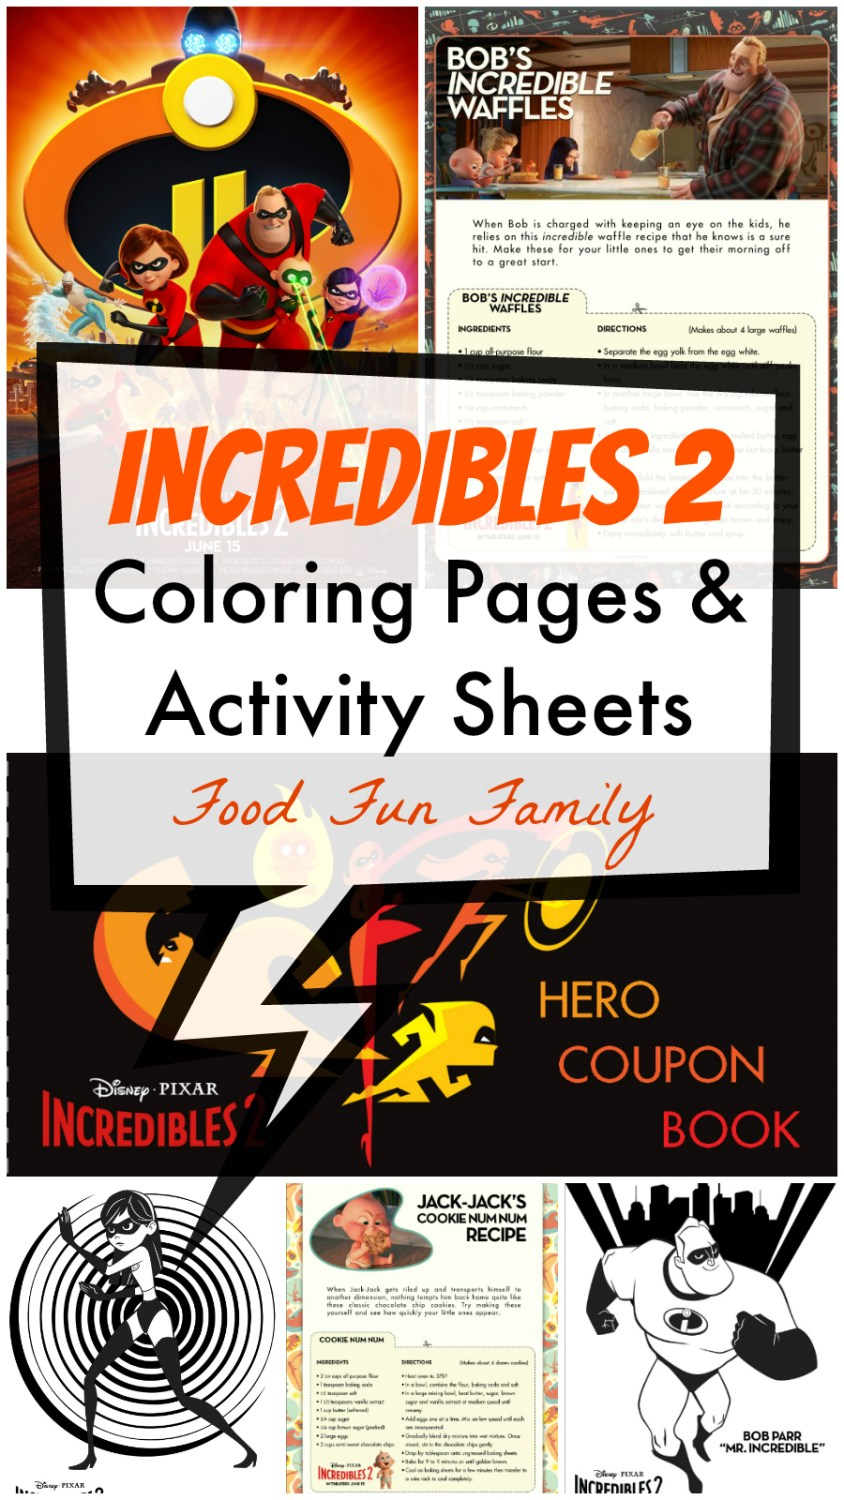 Incredibles 2 Coloring Pages and Activity Sheets from Food Fun Family